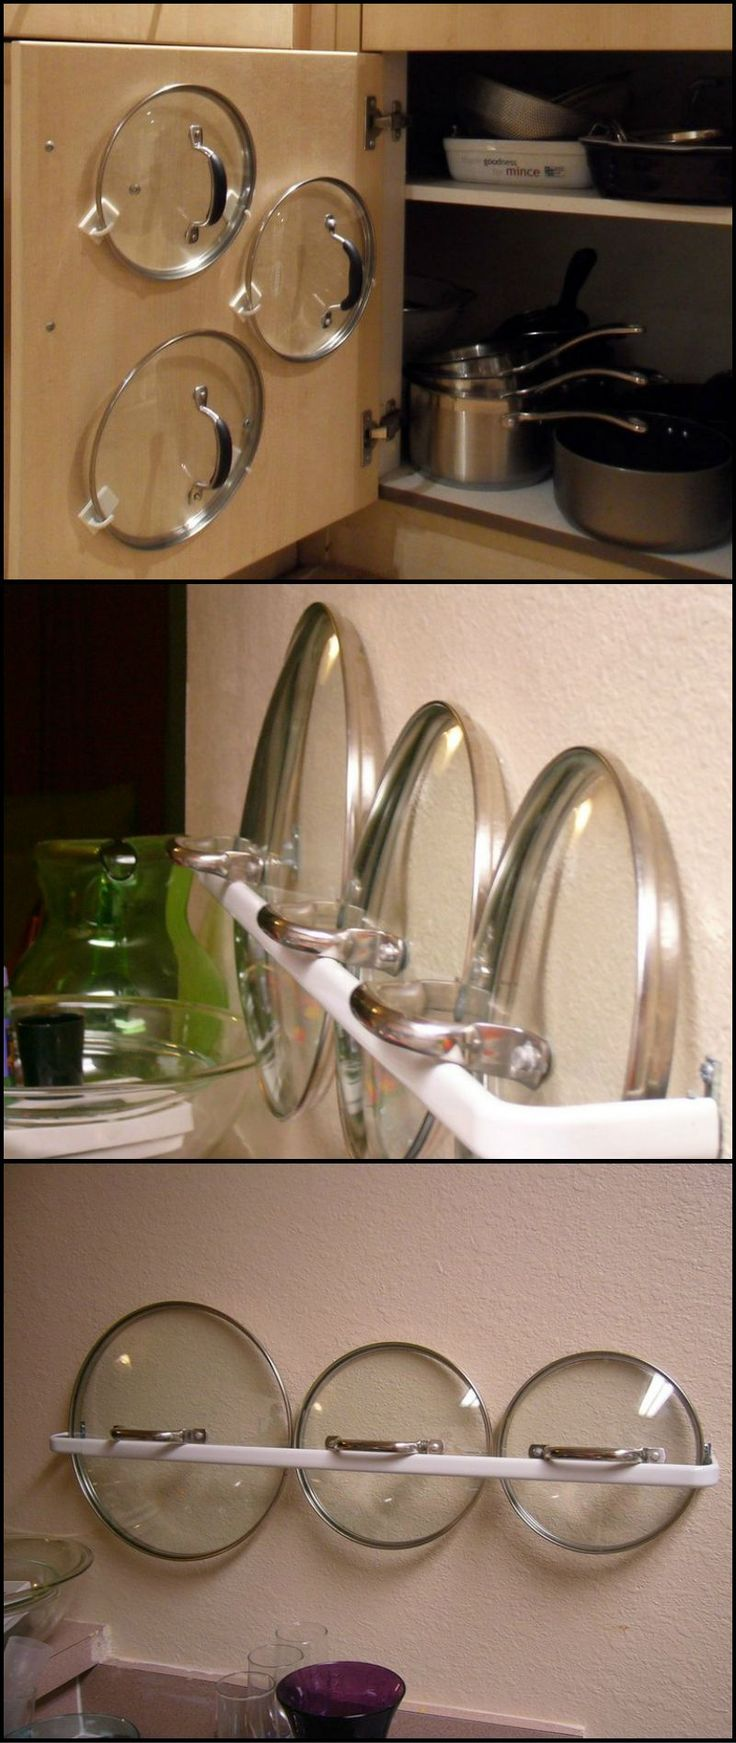 Don't you just hate it when you can't find the right lid for a pot?  http://diyprojects.ideas2live4.com/2014/10/13/diy-pot-lid-organizer/  Whether it's because you don't have a proper storage solution for pot lids, or because your kitchen is just disorganized, here are a couple of simple, inexpensive solutions!